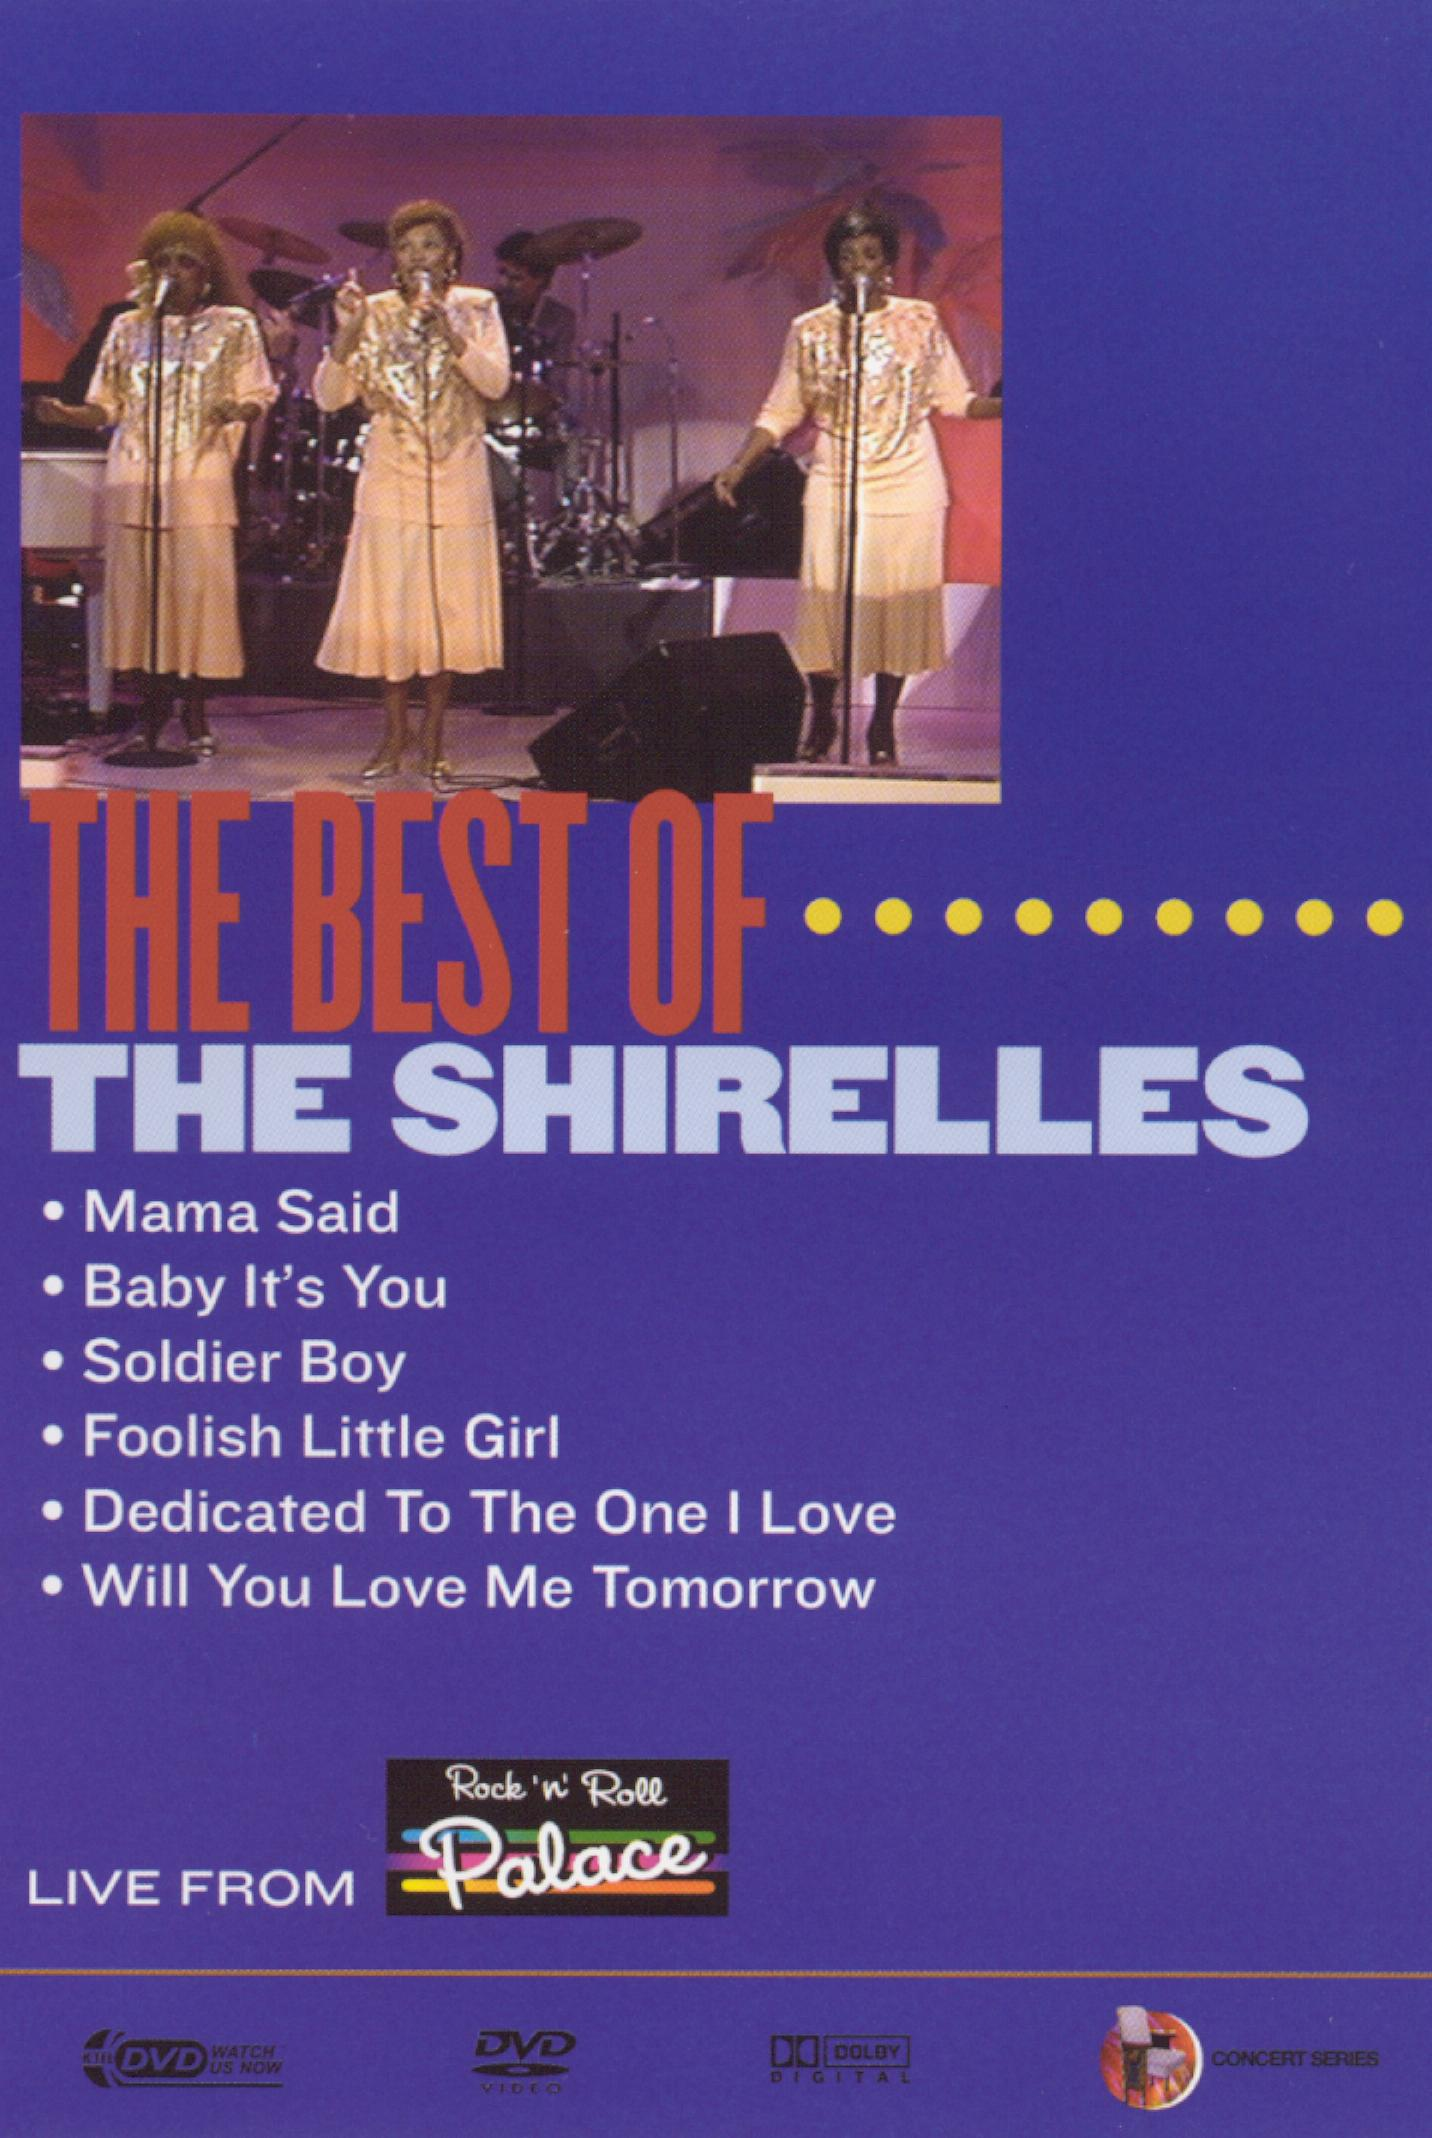 Live From Rock 'n' Roll Palace: The Best of The Shirelles